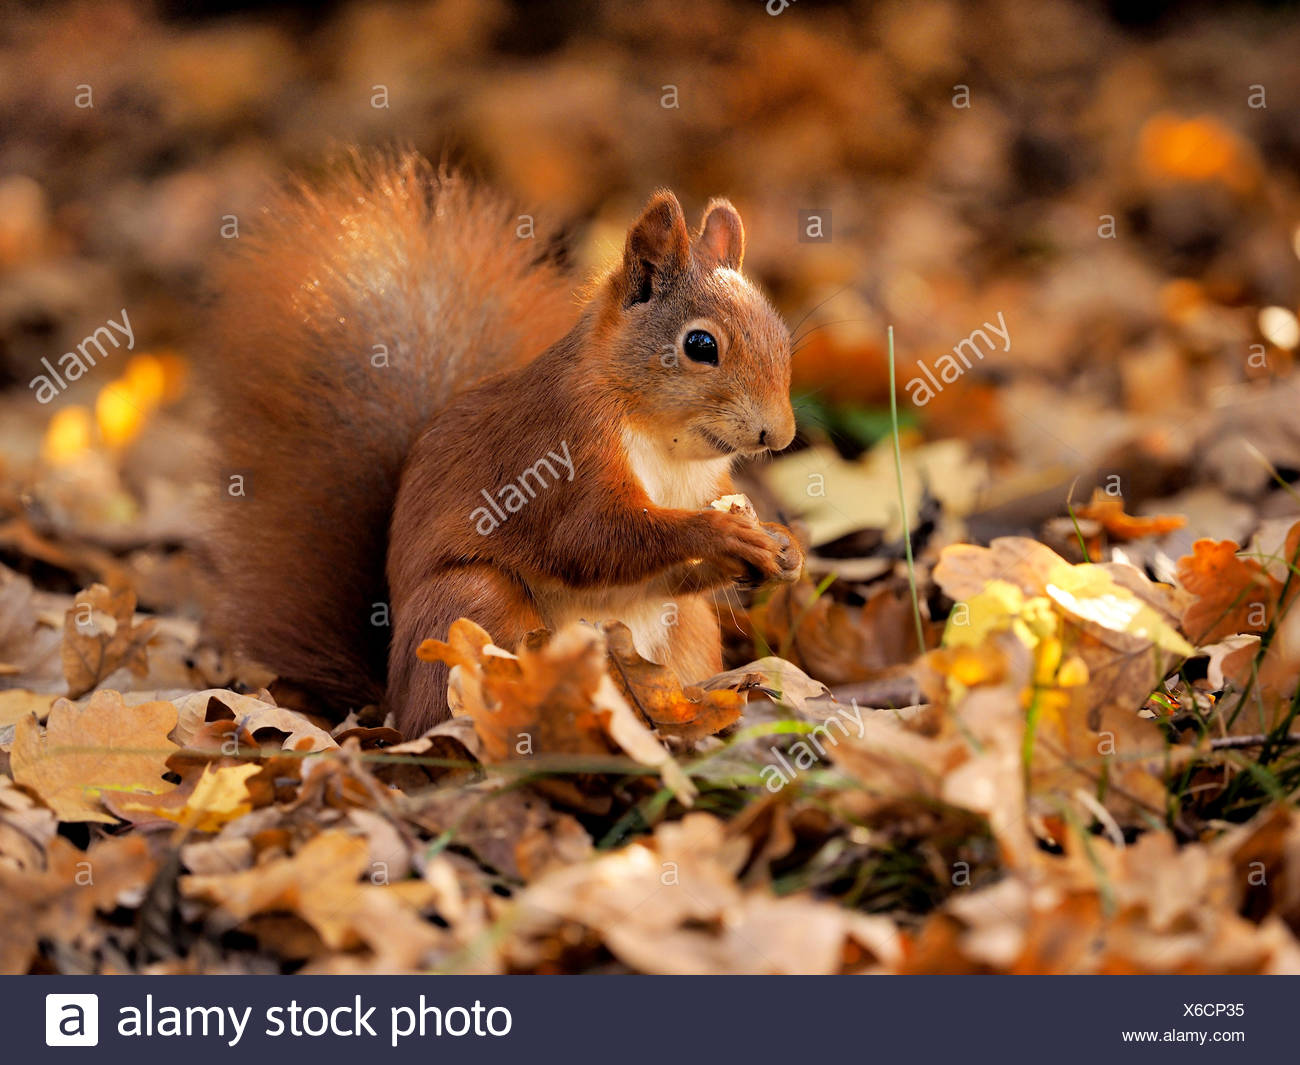 European red squirrel, Eurasian red squirrel (Sciurus vulgaris), sitting on autumn foliage and eating, Germany, Saxony - Stock Image